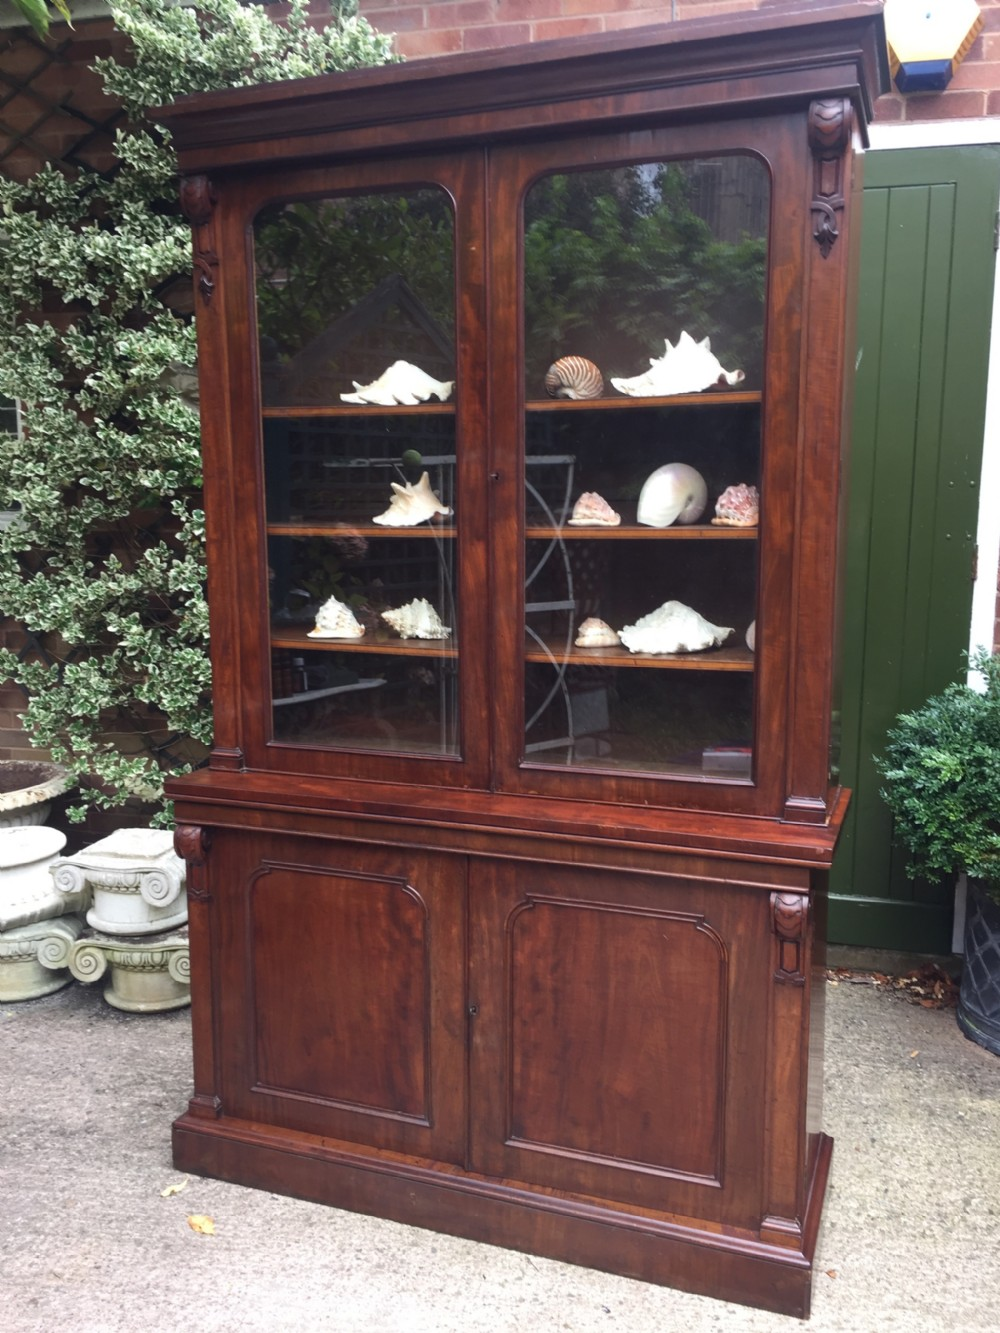 superior quality mid c19th mahogany library bookcase of broad proportions